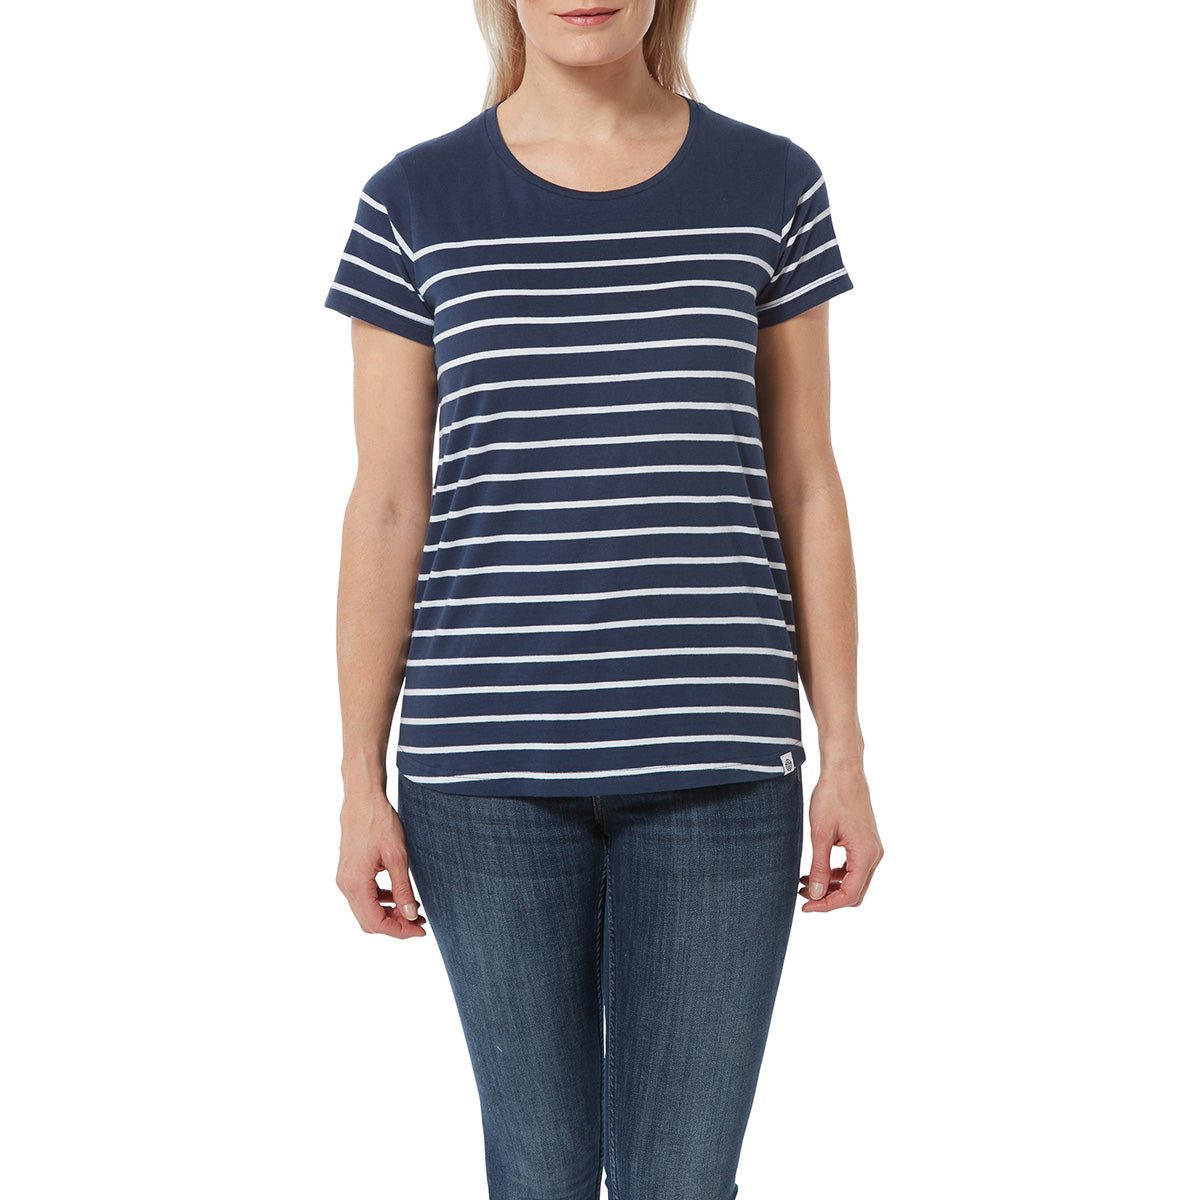 Morigan Womens T-Shirt - Naval Blue Stripe